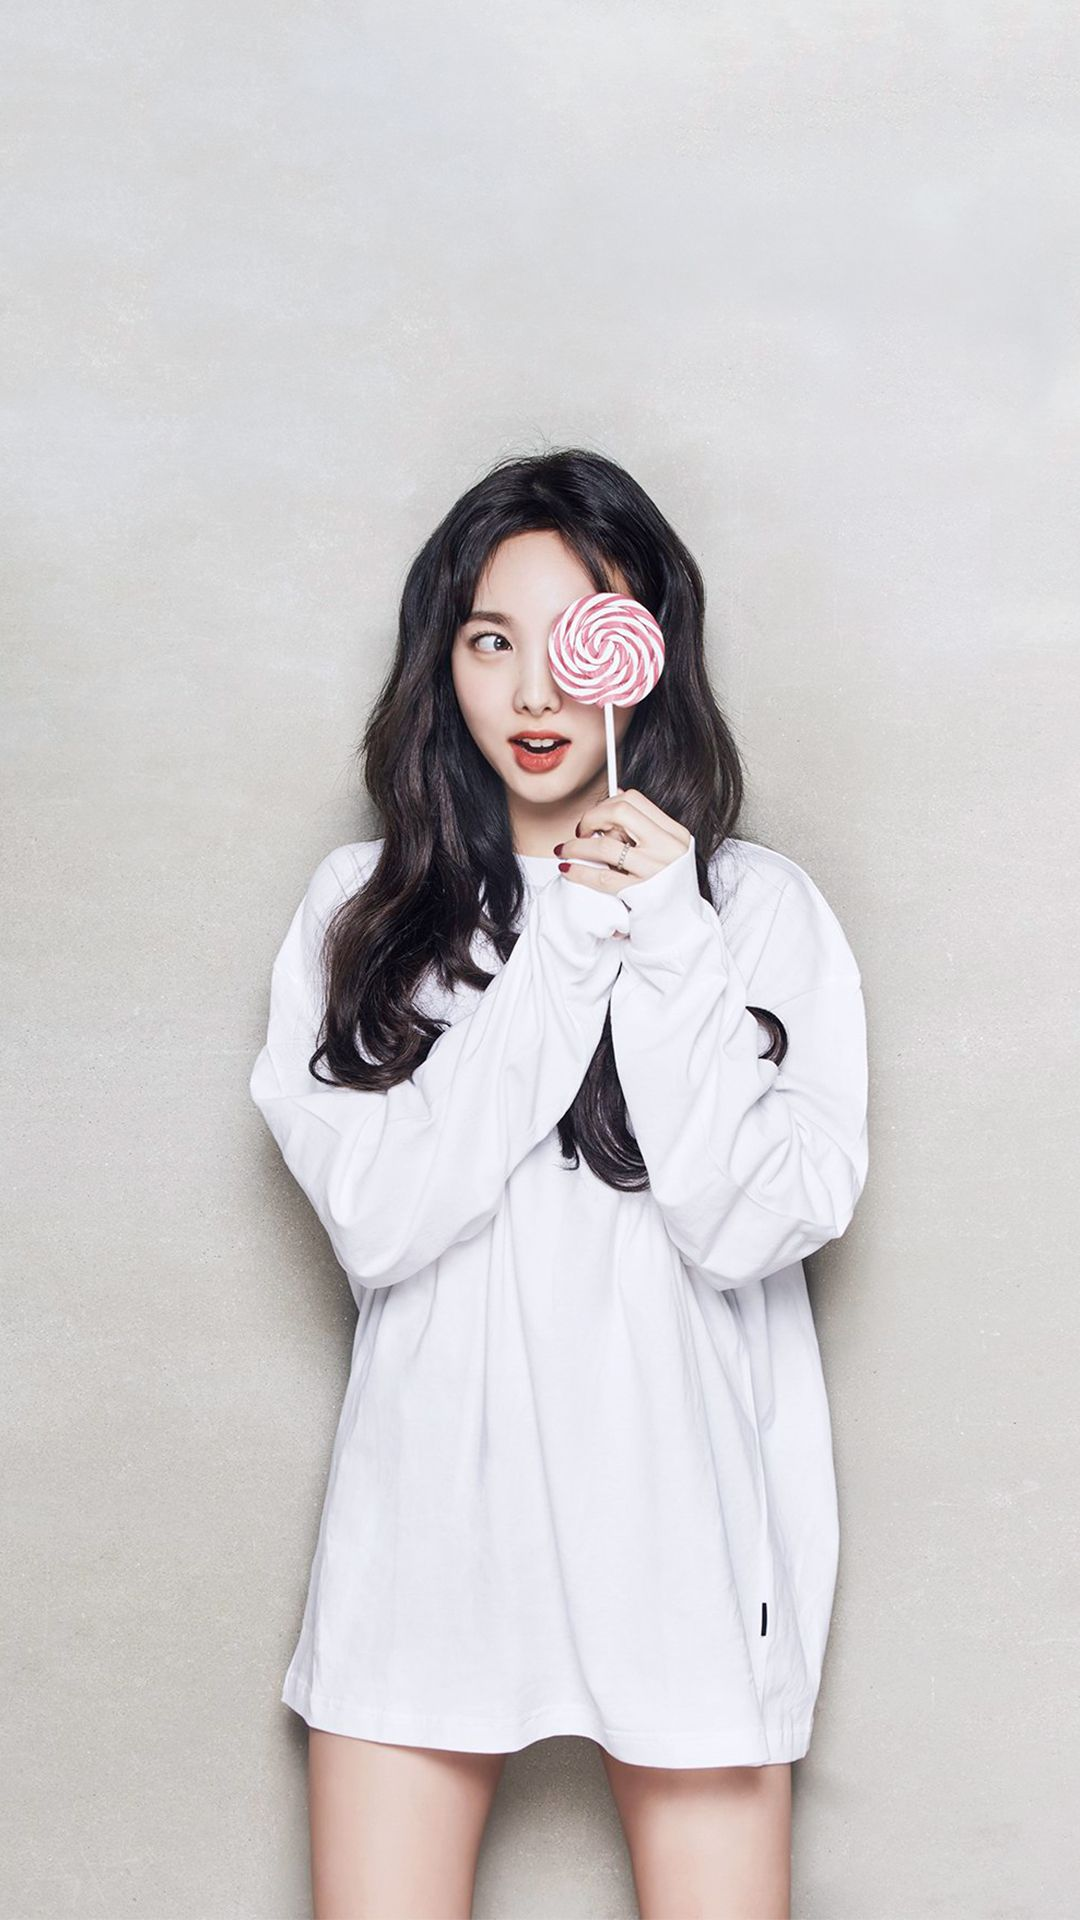 iPhone Wallpapers HD from Uploaded by user,  Nayeon Twice x OhBoy!  #TWICE #트와이스 #OhBoy #오보이 #Nayeon